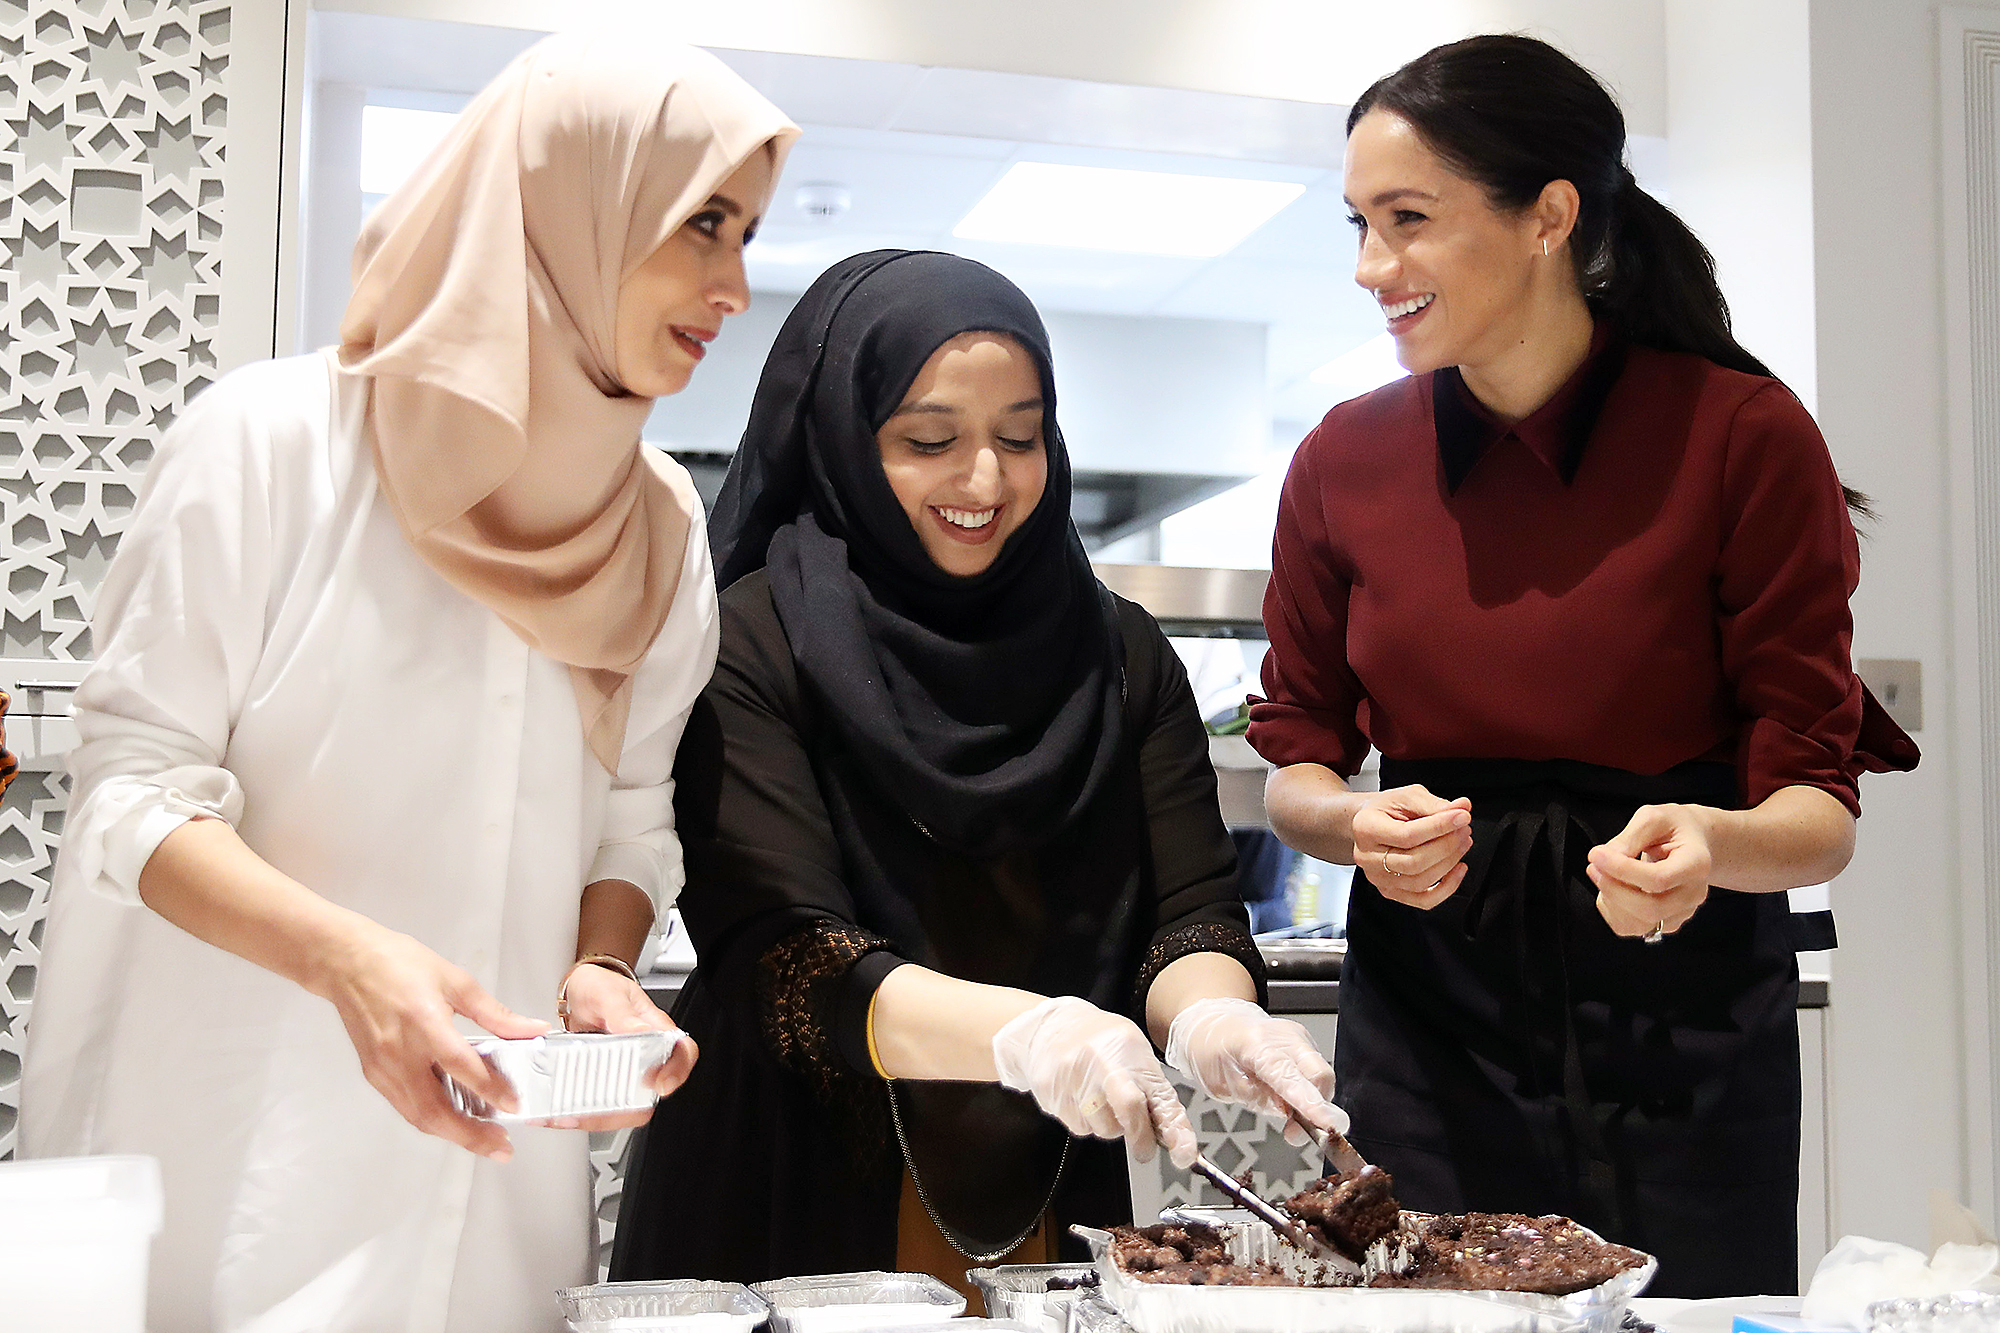 Meghan Markle visits the Hubb Community Kitchen Prince Harry and Meghan Markle Send Thanks to UK Charity for Distributing Meals During the COVID-19 Pandemic